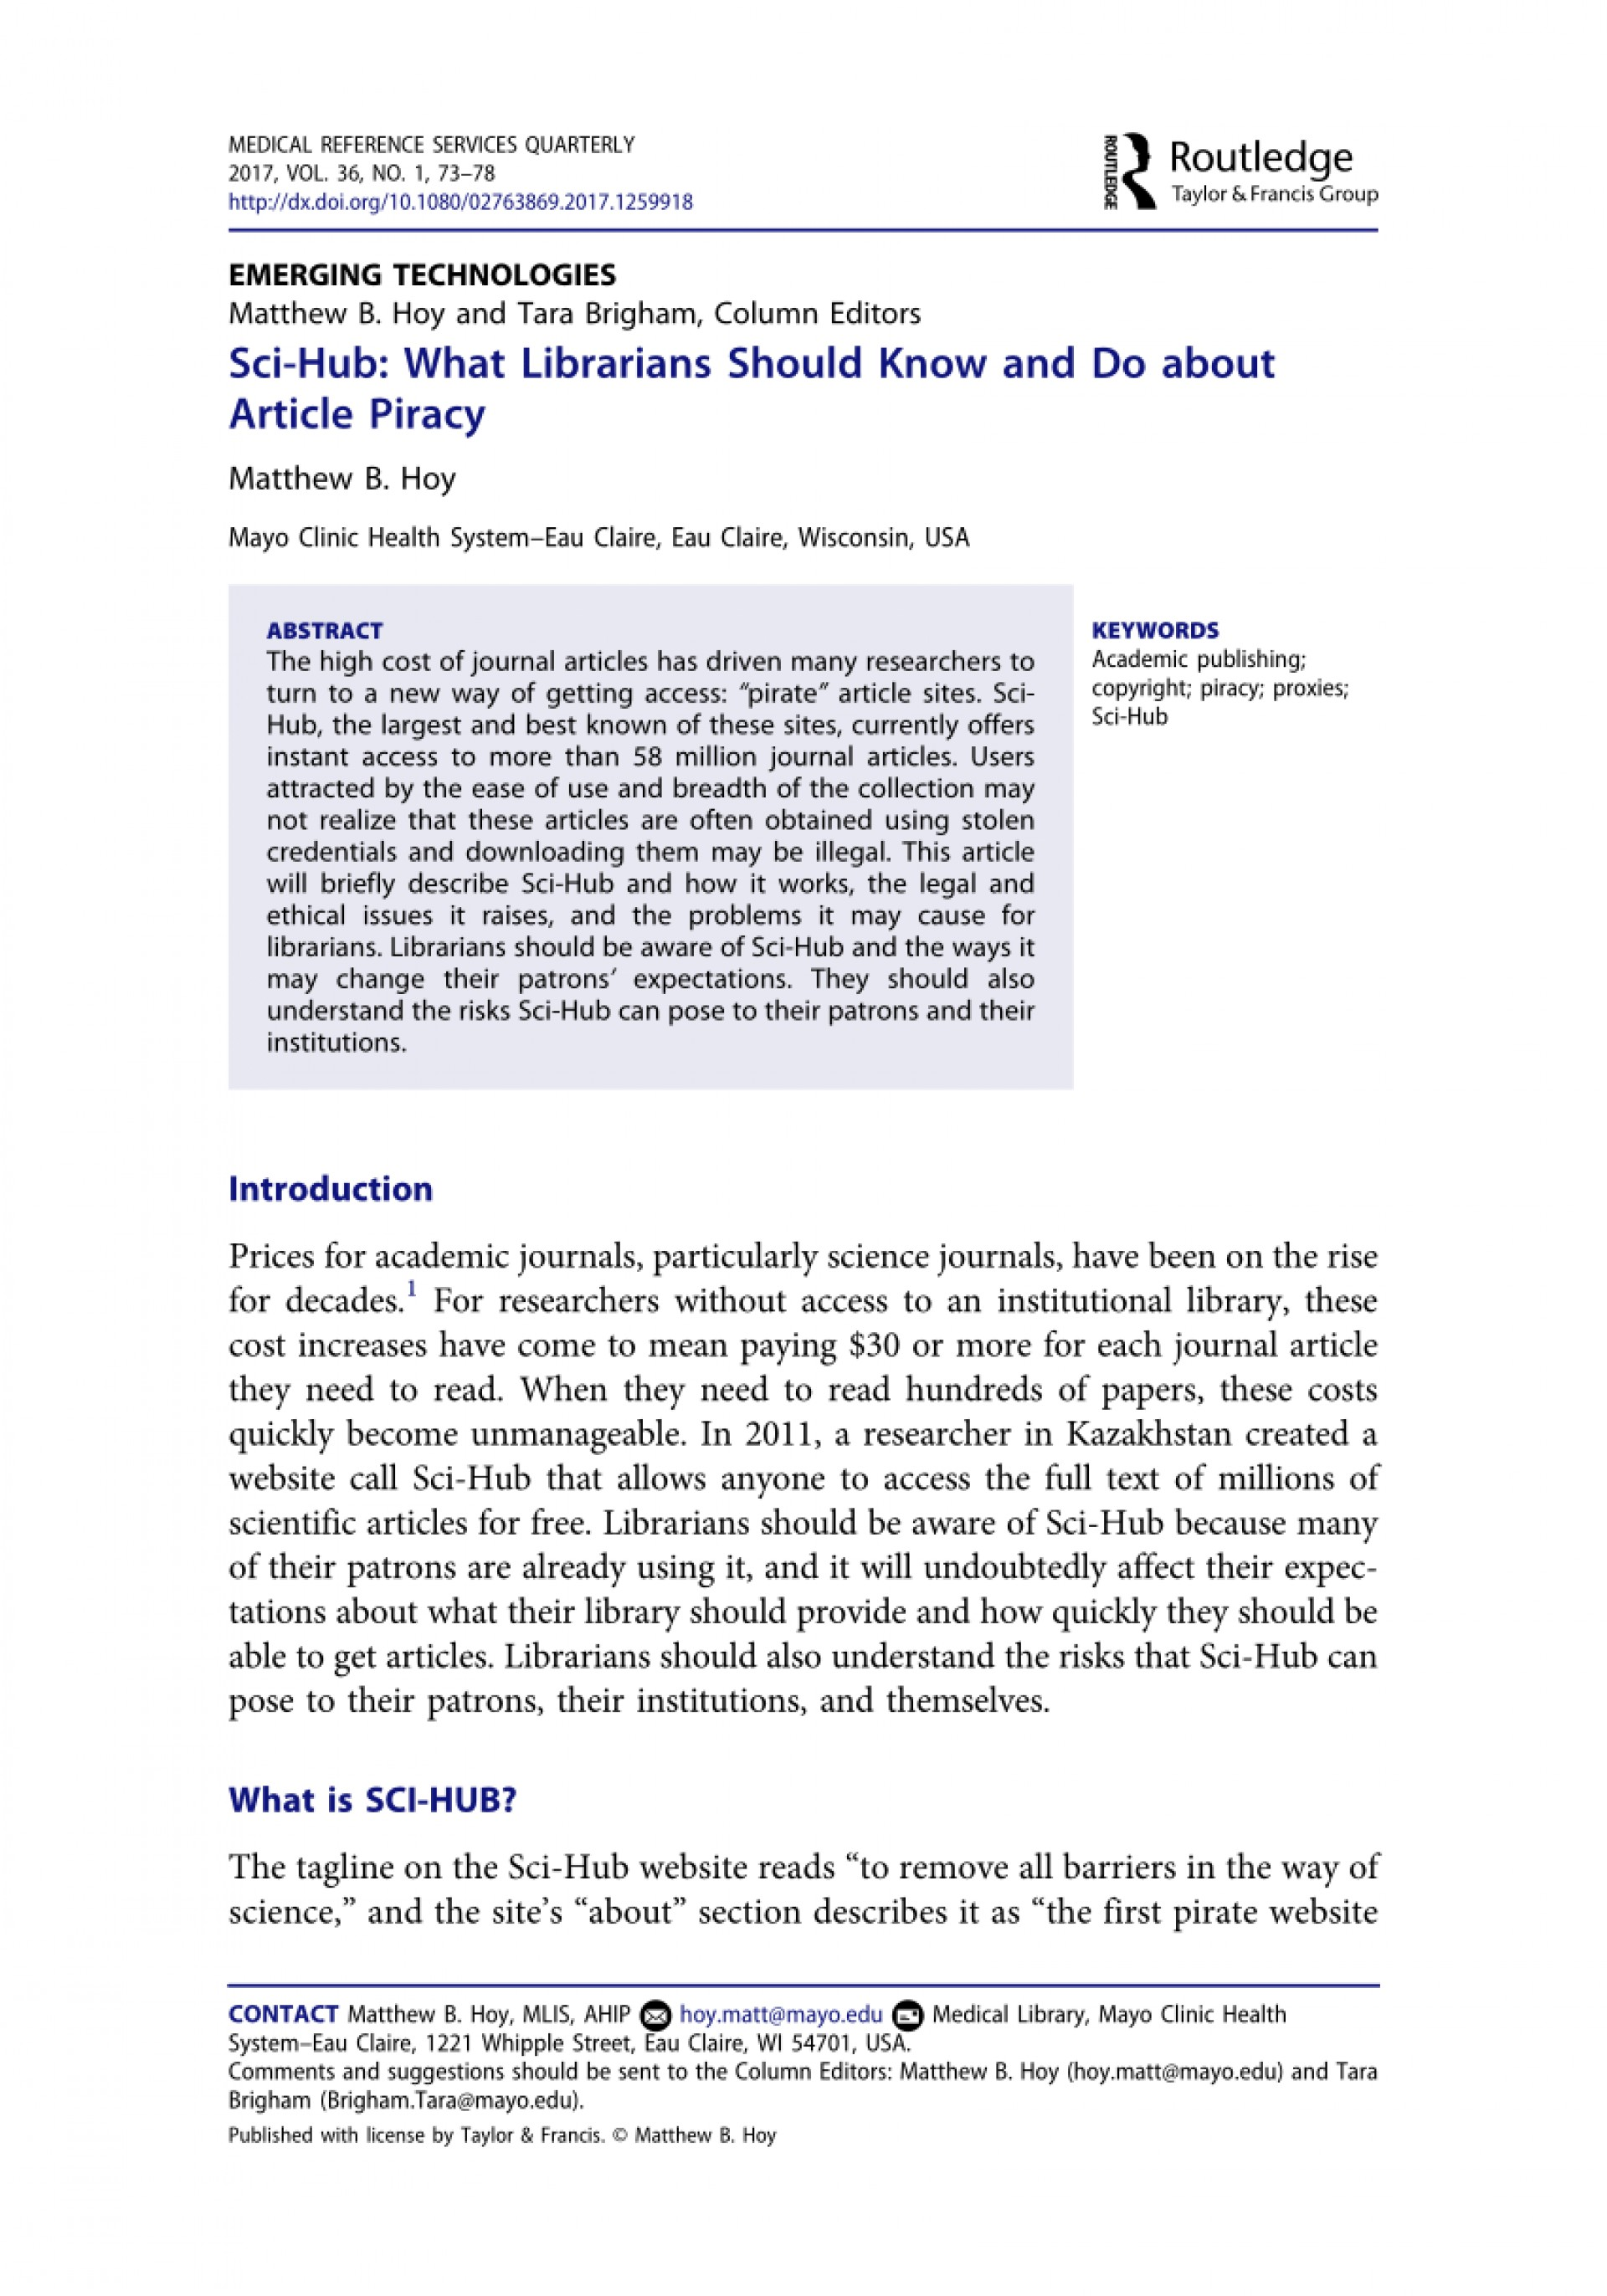 018 Pirate Website For Researchs Largepreview Amazing Research Papers 1920